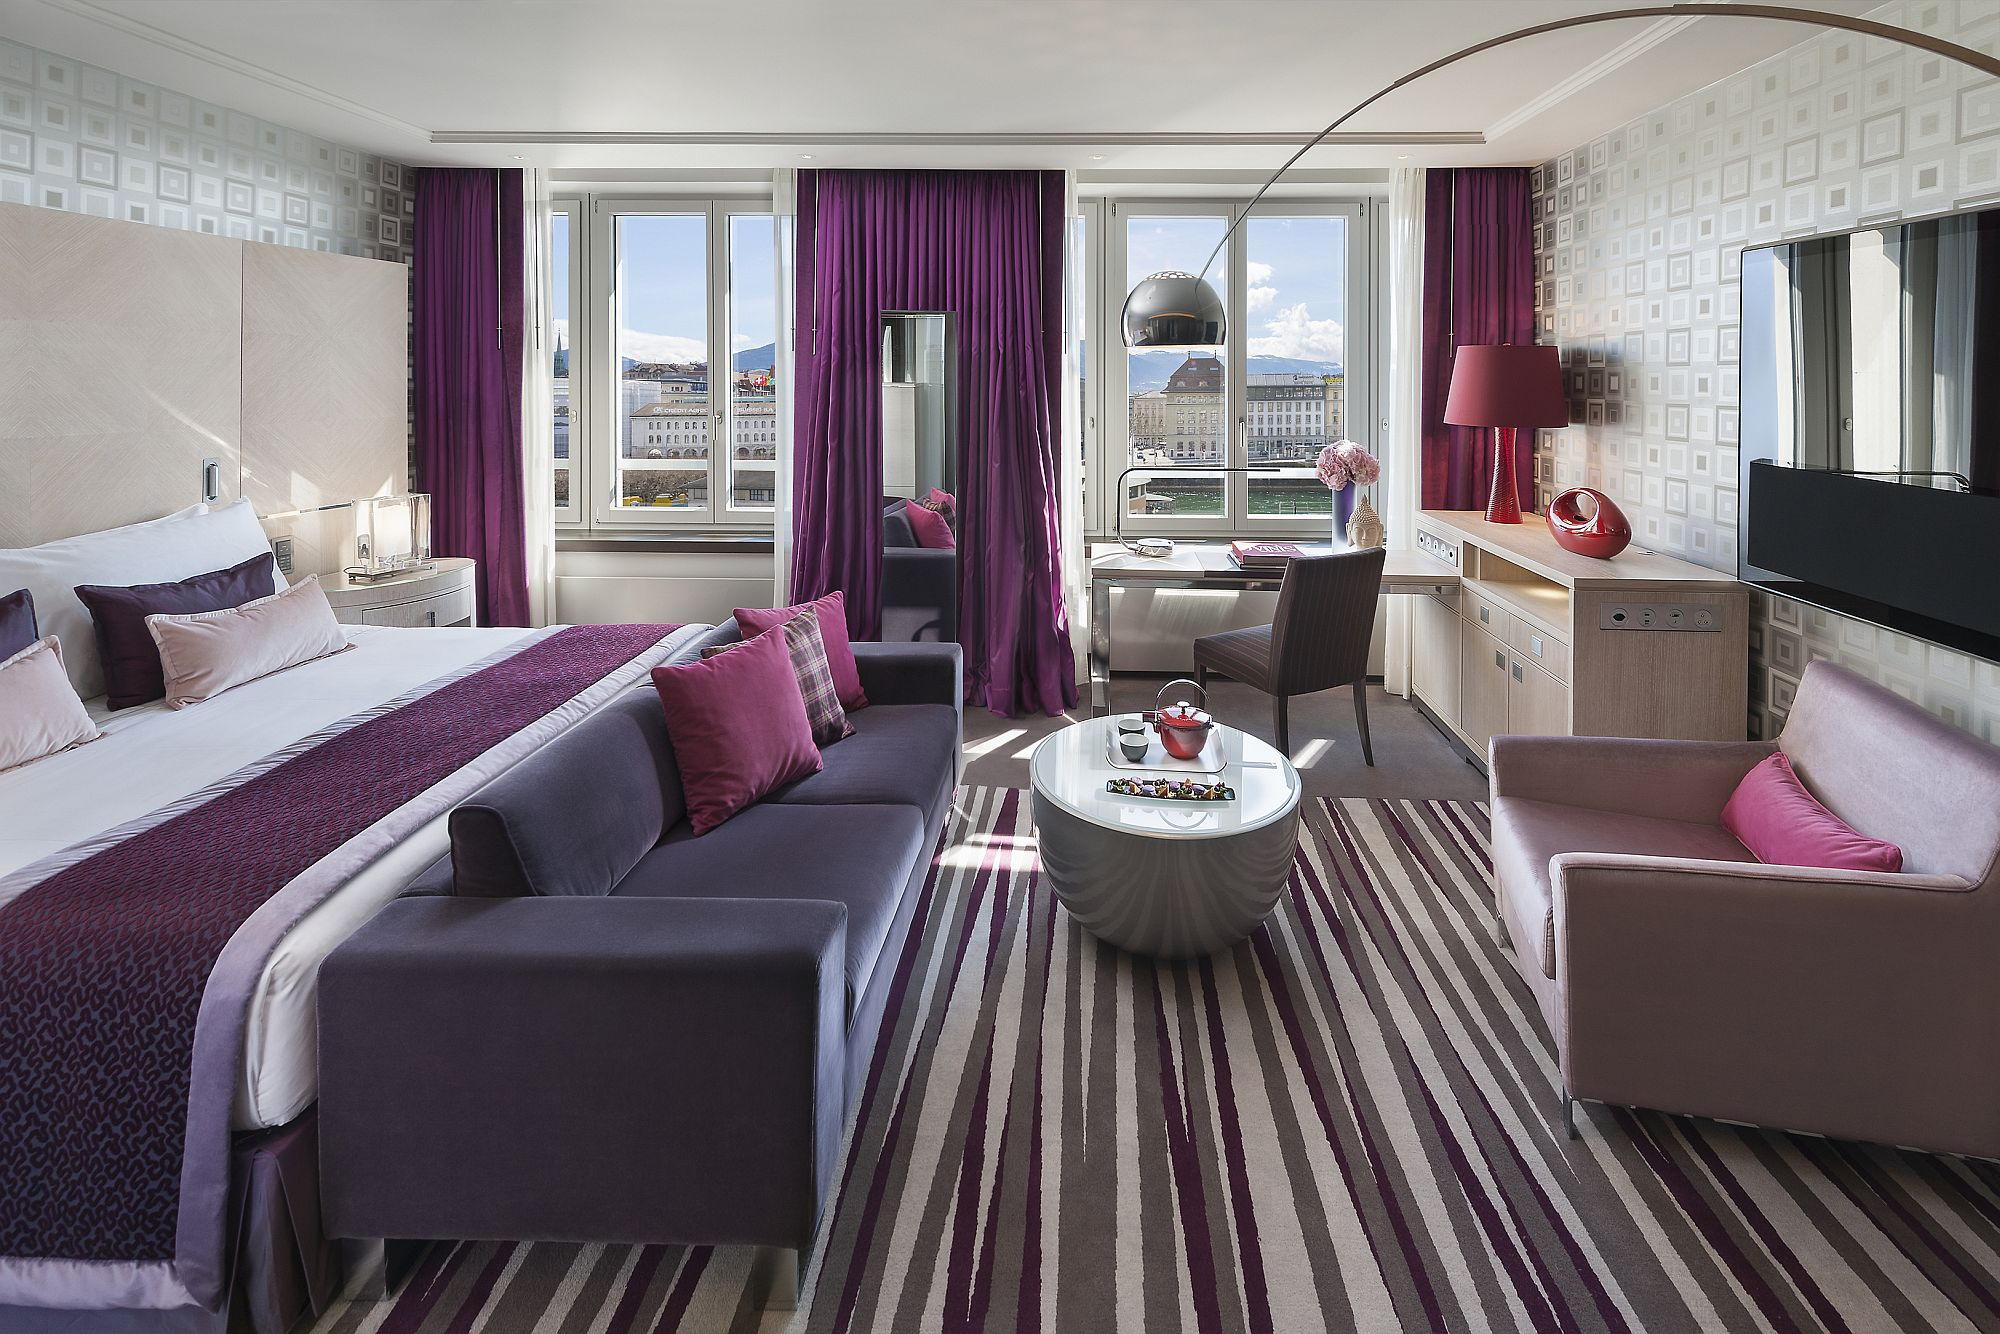 Mandarin Suite at the lavish Swiss Hotel that drapes you in luxury